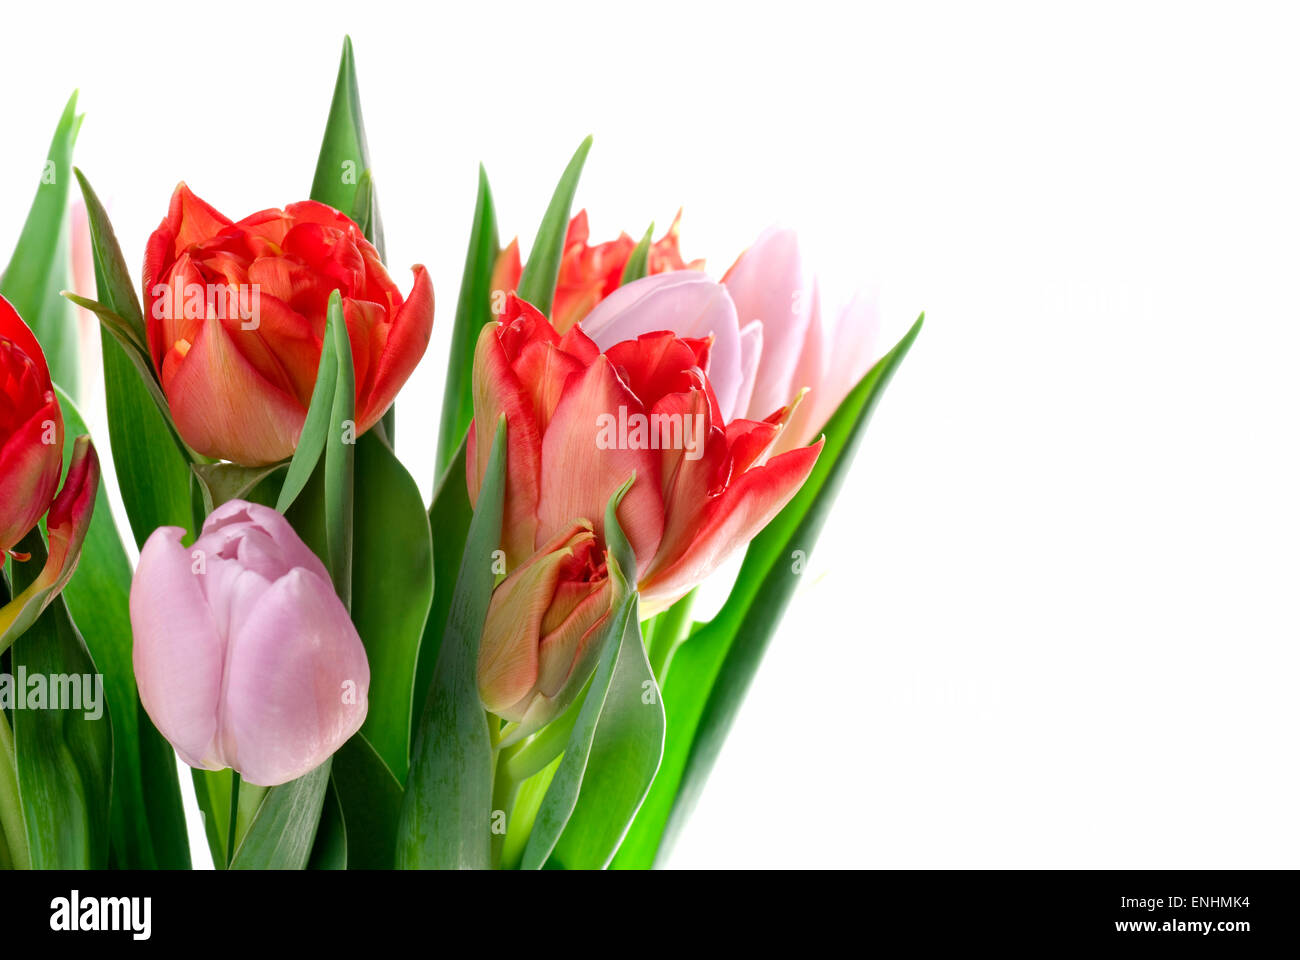 Bouquet tulips close up. Copy space. - Stock Image